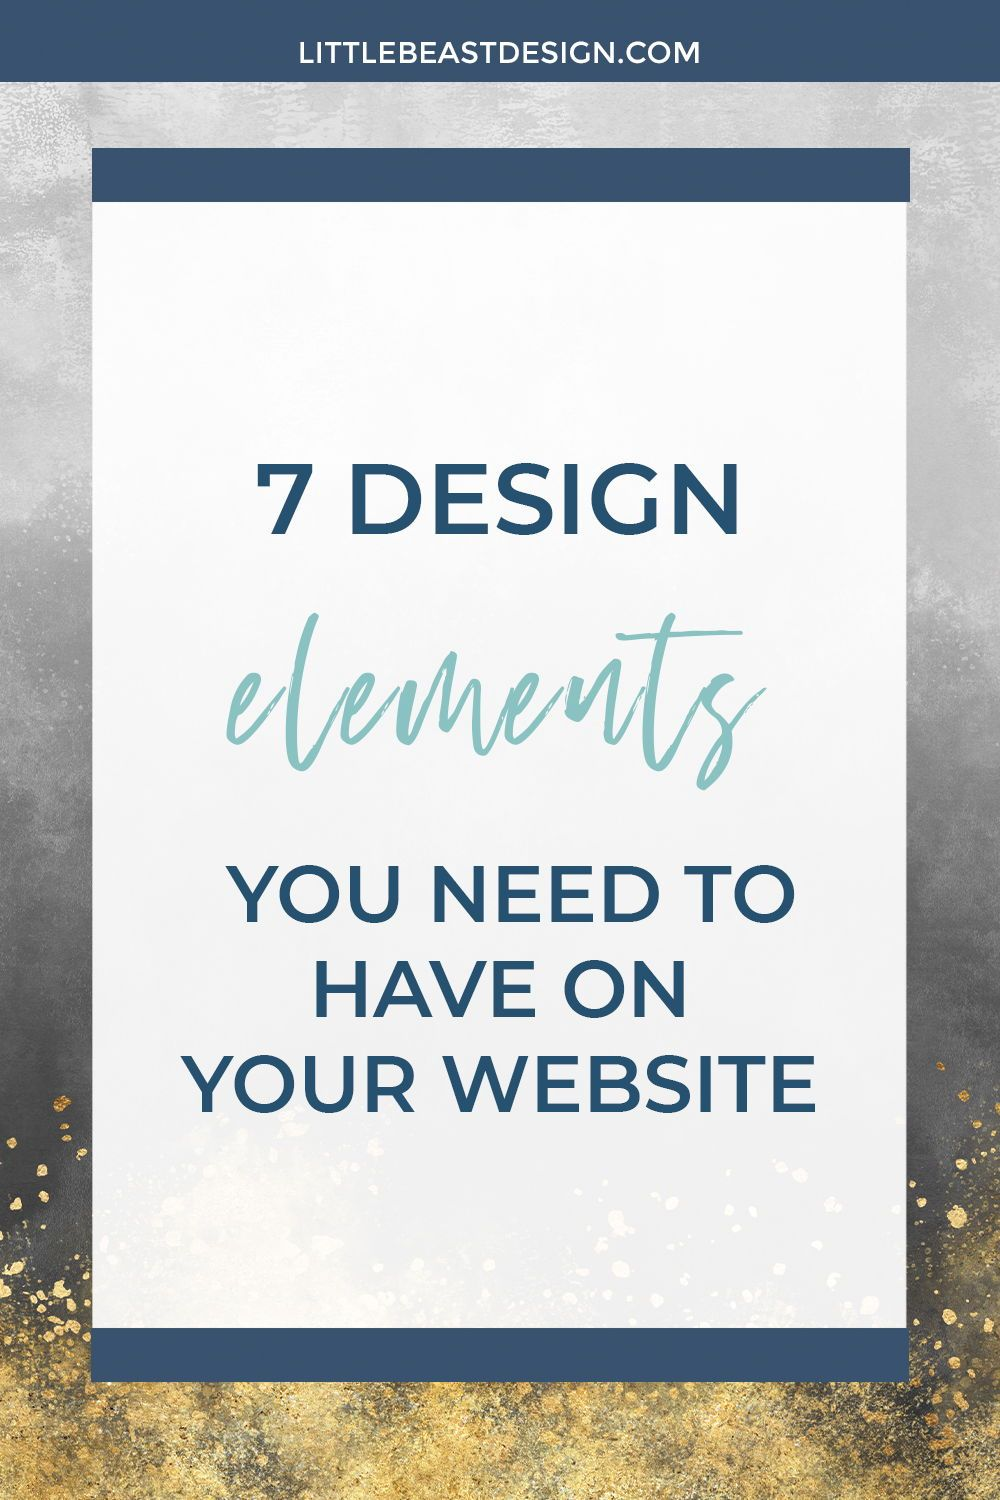 Looking for website inspiration? Click through to find out 7 design elements you need to have on your website! #websitedesigninspiration #onlinebusiness #creativeentrepreneur #websitedesign